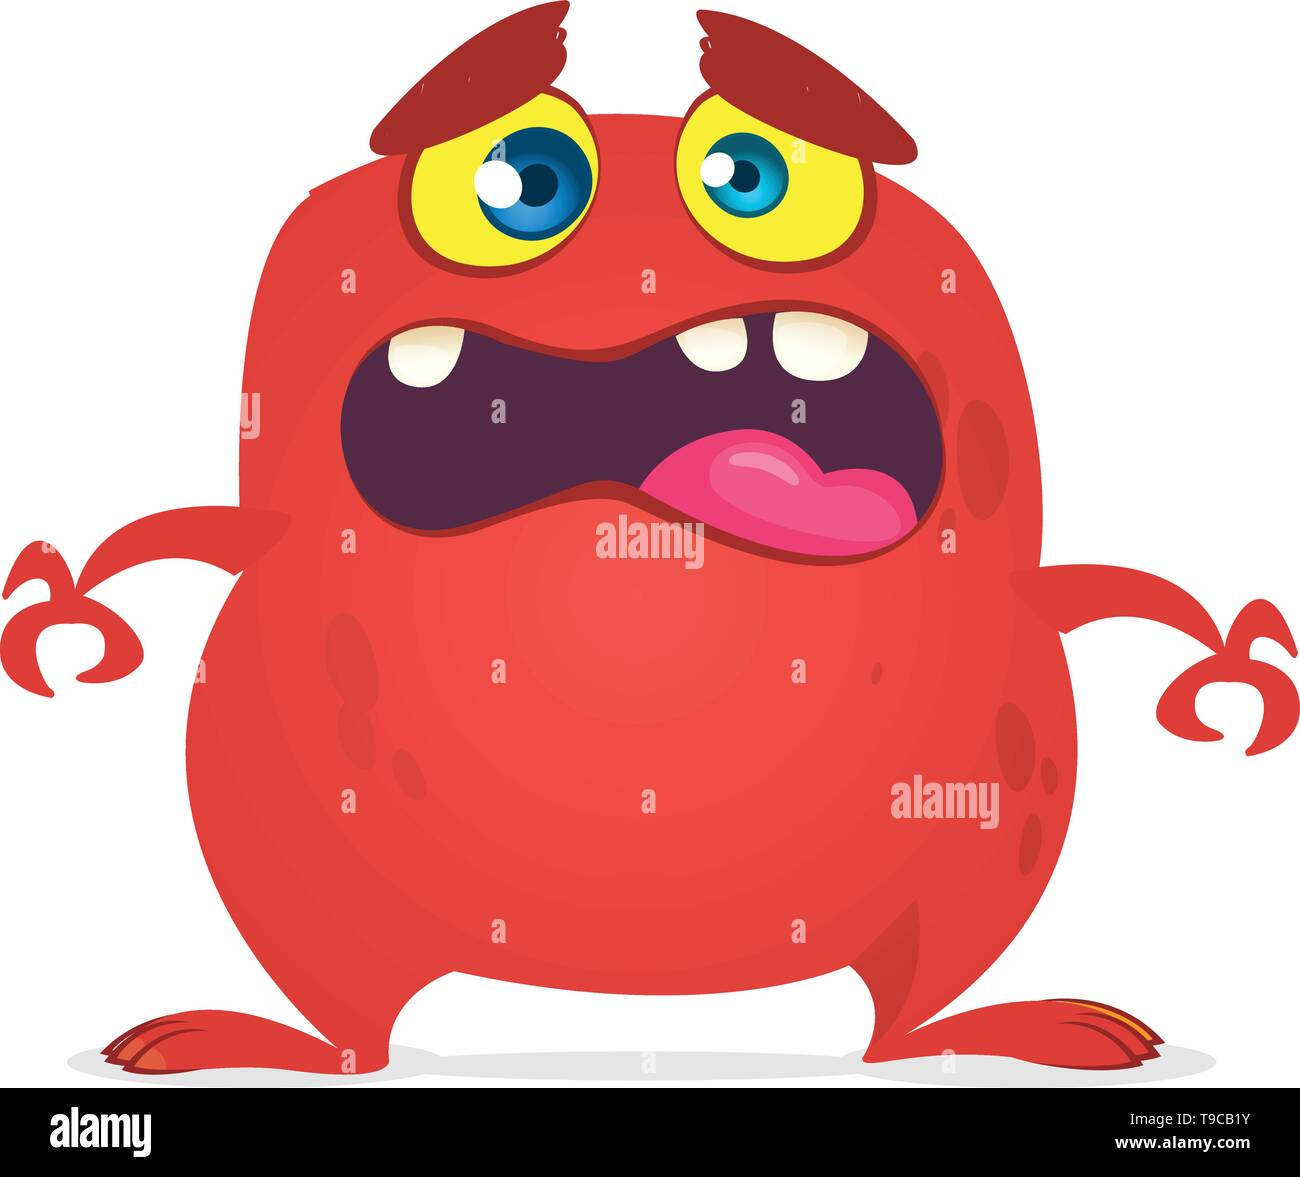 Angry cartoon red monster screanimg. Yelling angry monster expression. Halloween vector illustration - Stock Image